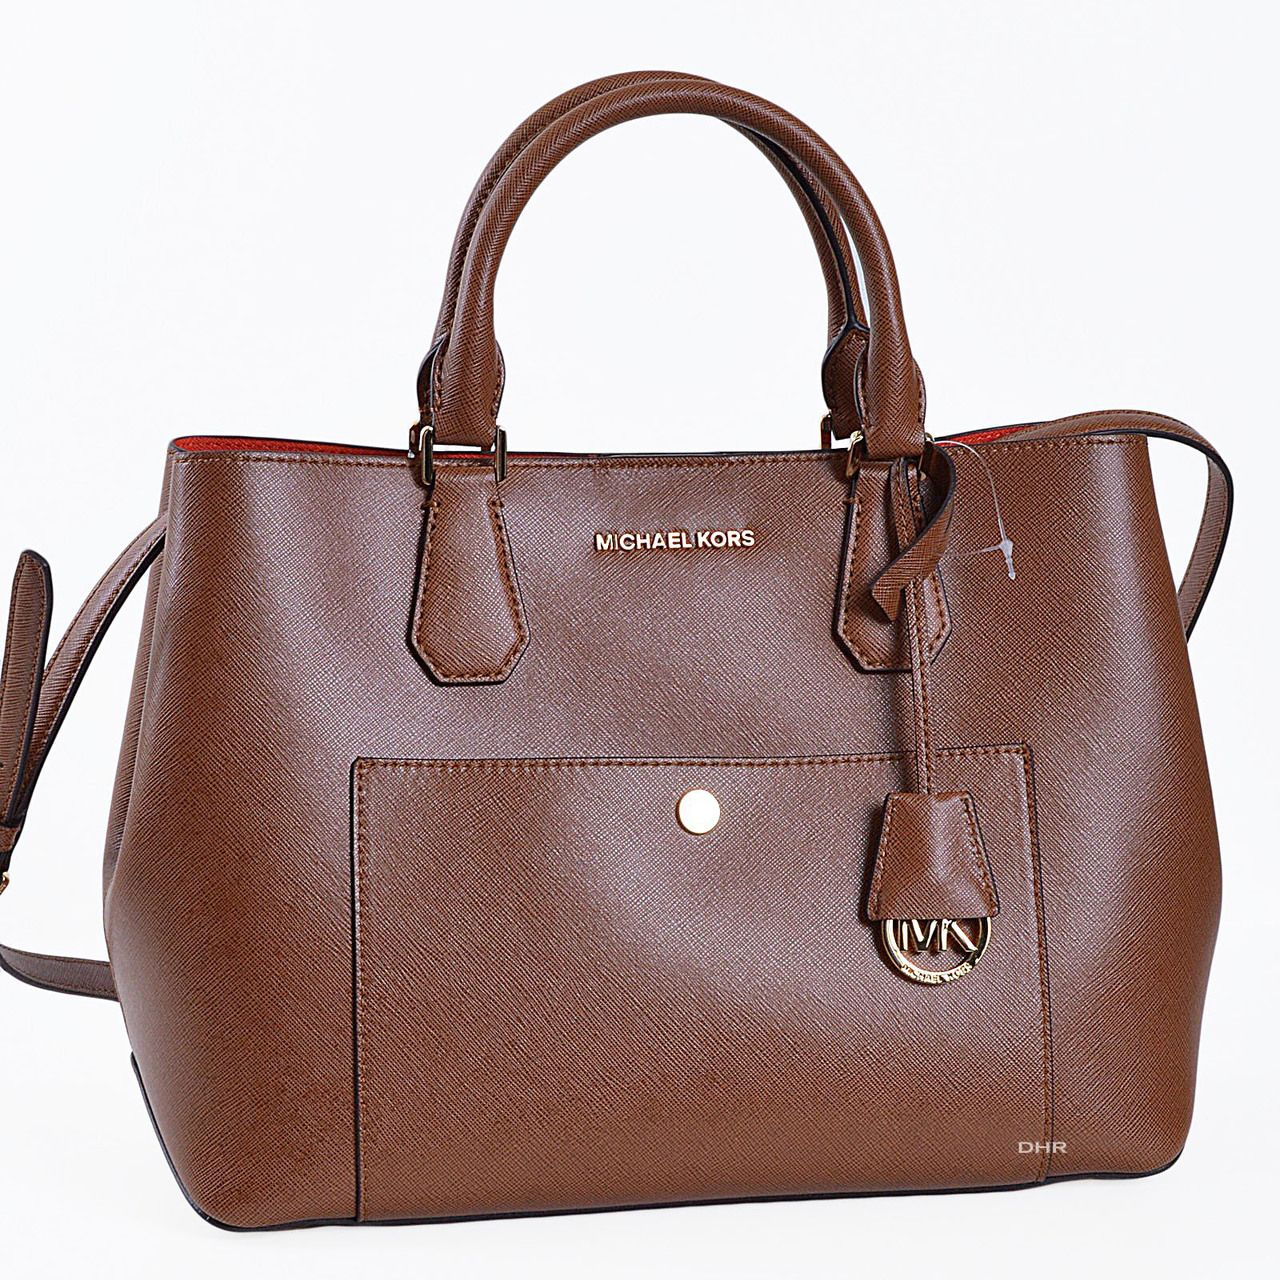 Authentic Michael Kors Bags Guaranteed Greenwich Large Tote In Bag Luggage Brown 23222 Http